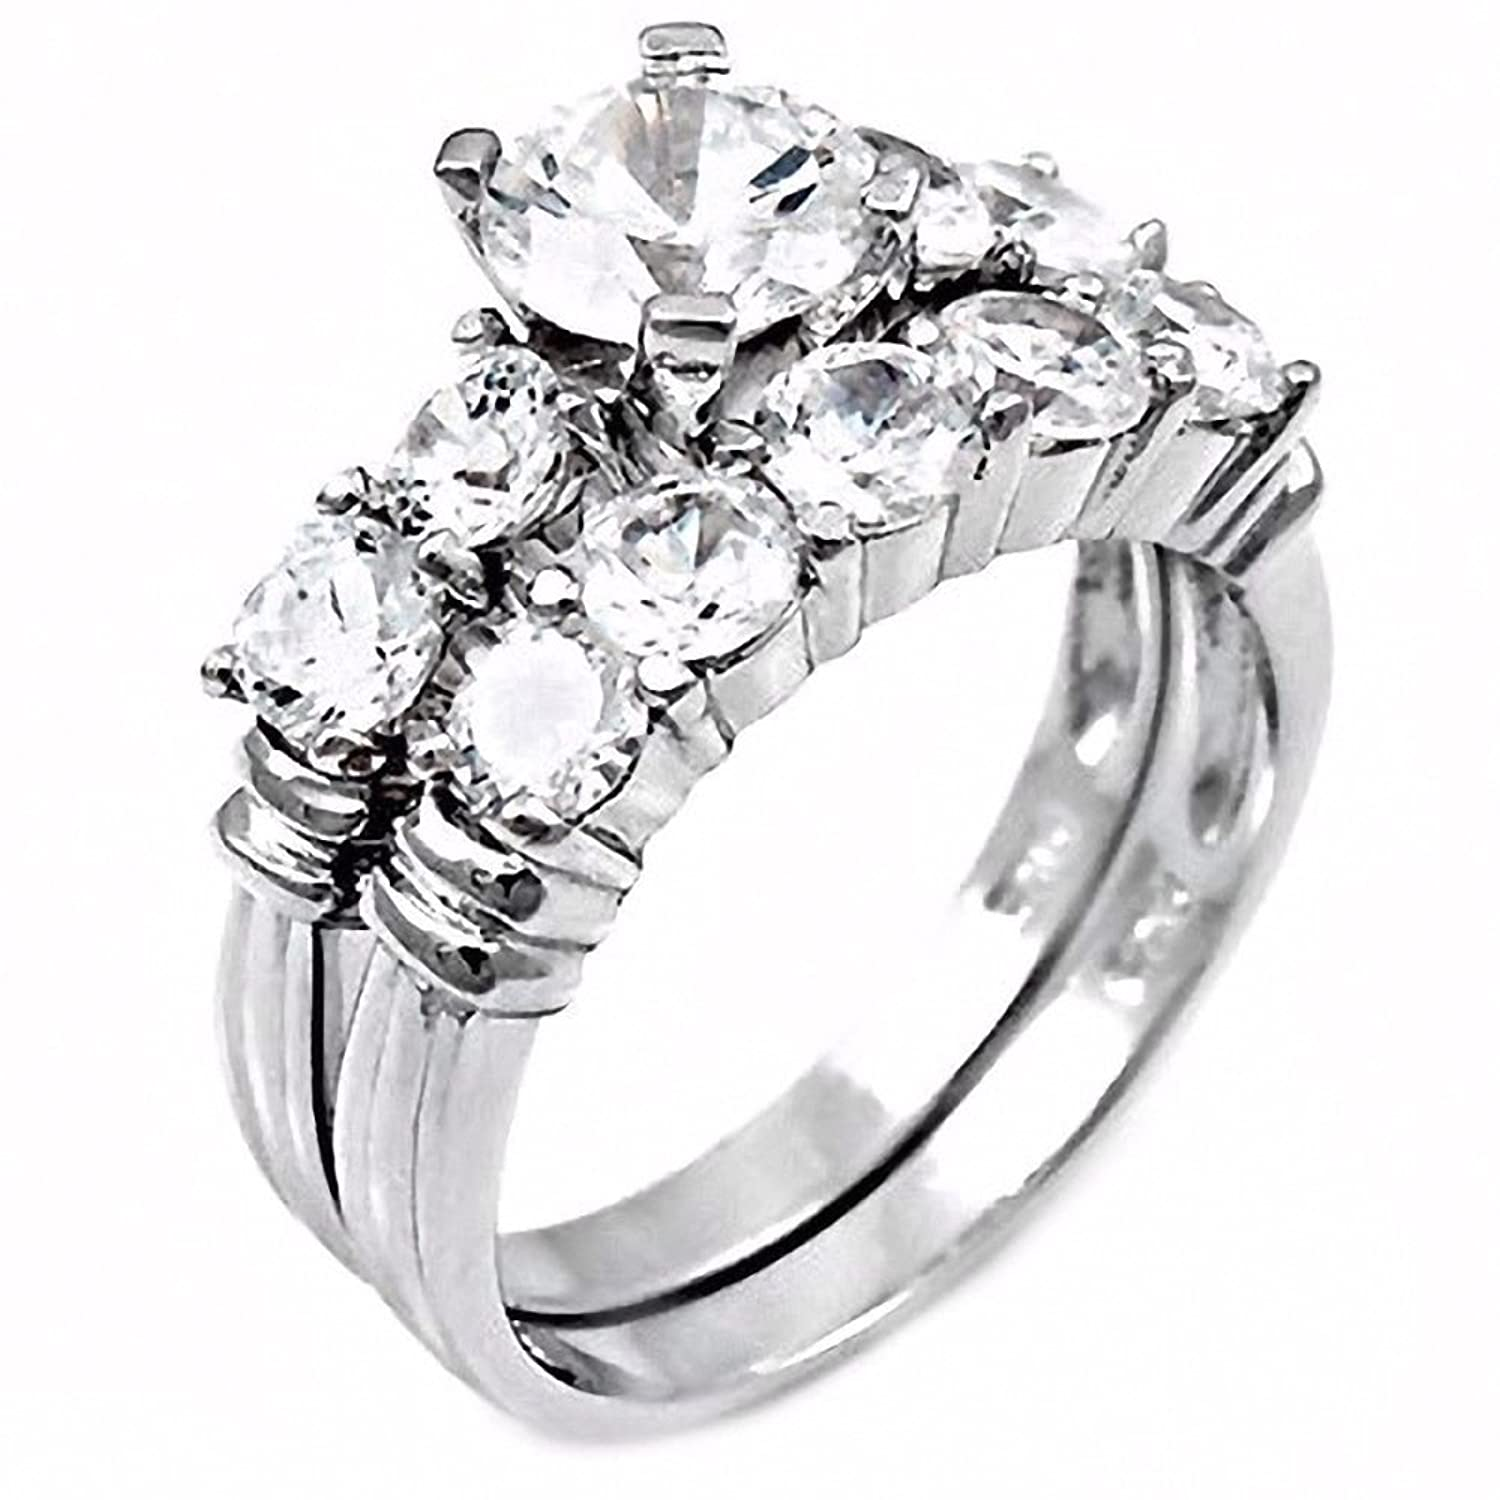 Sondra: 3.5ct Russian Ice on Fire CZ 2 Pc 5 Stone Design Wedding Ring Set 925 Silver, 3239A